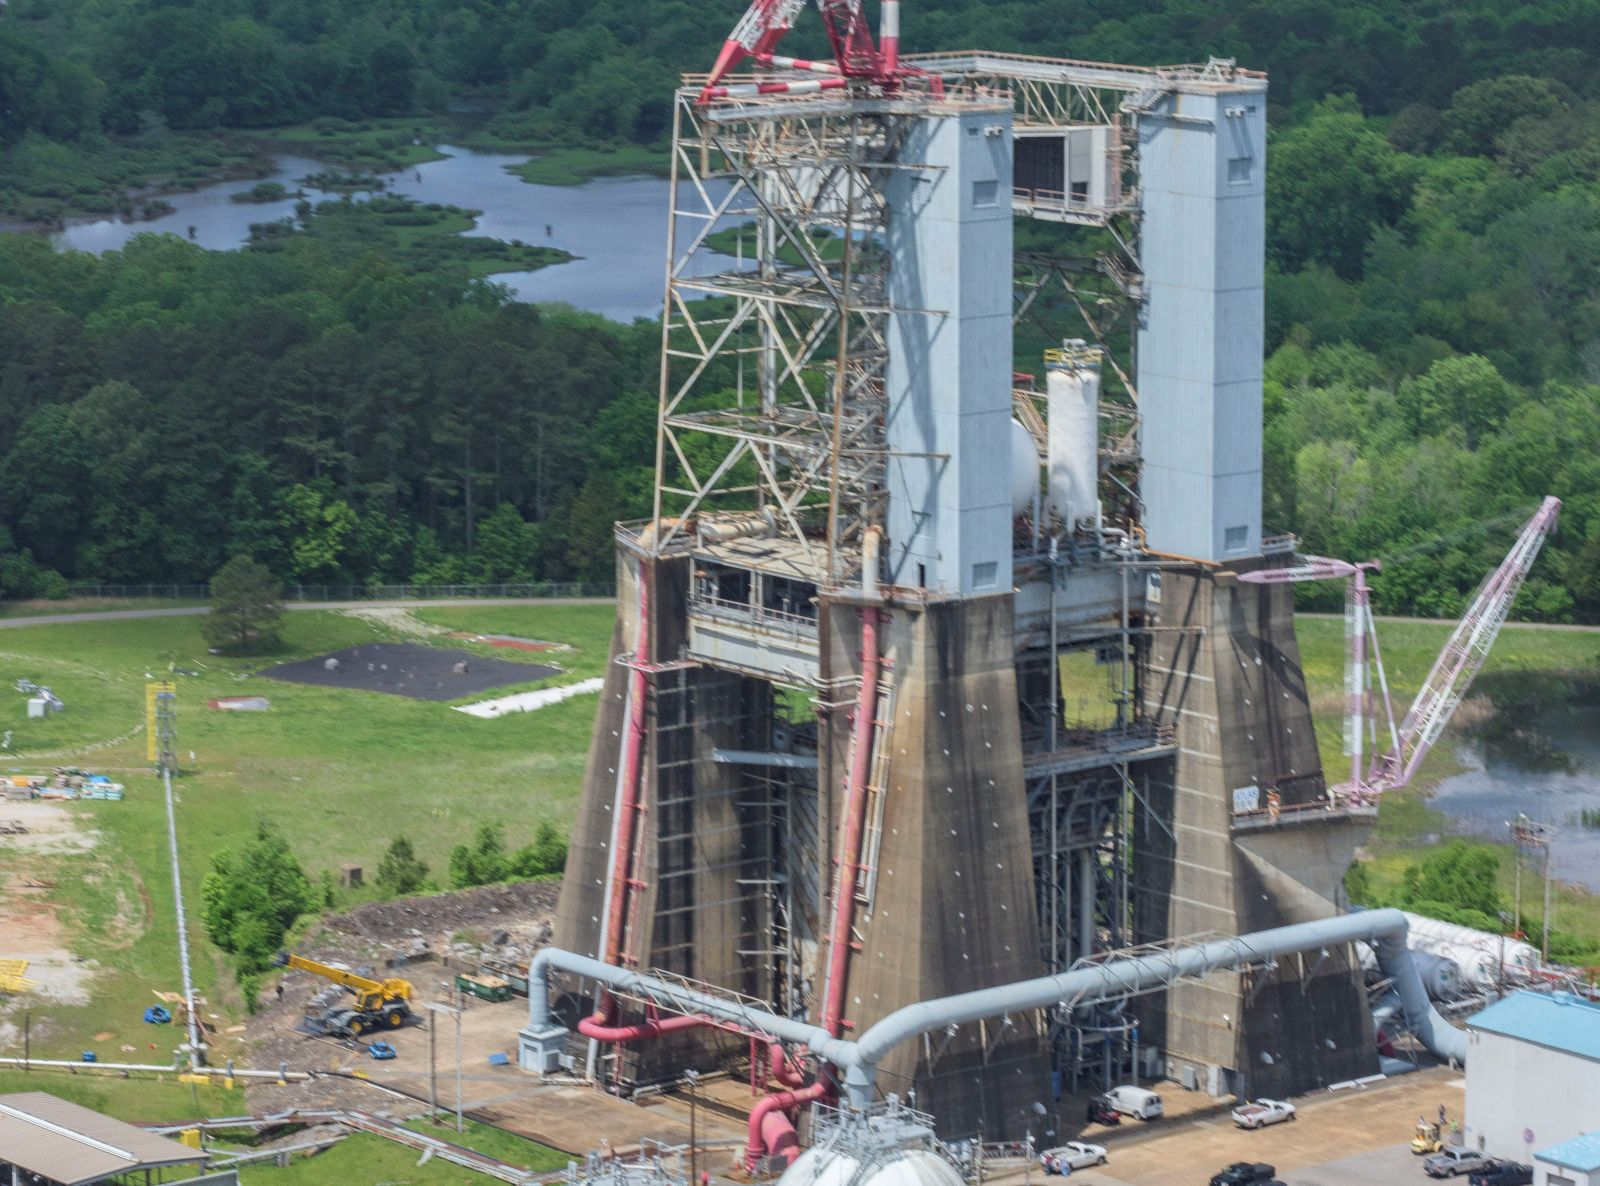 Blue Origin was granted access to Test Stand 4670 at NASA's Marshall Space Flight Center. Photo Credit: NASA